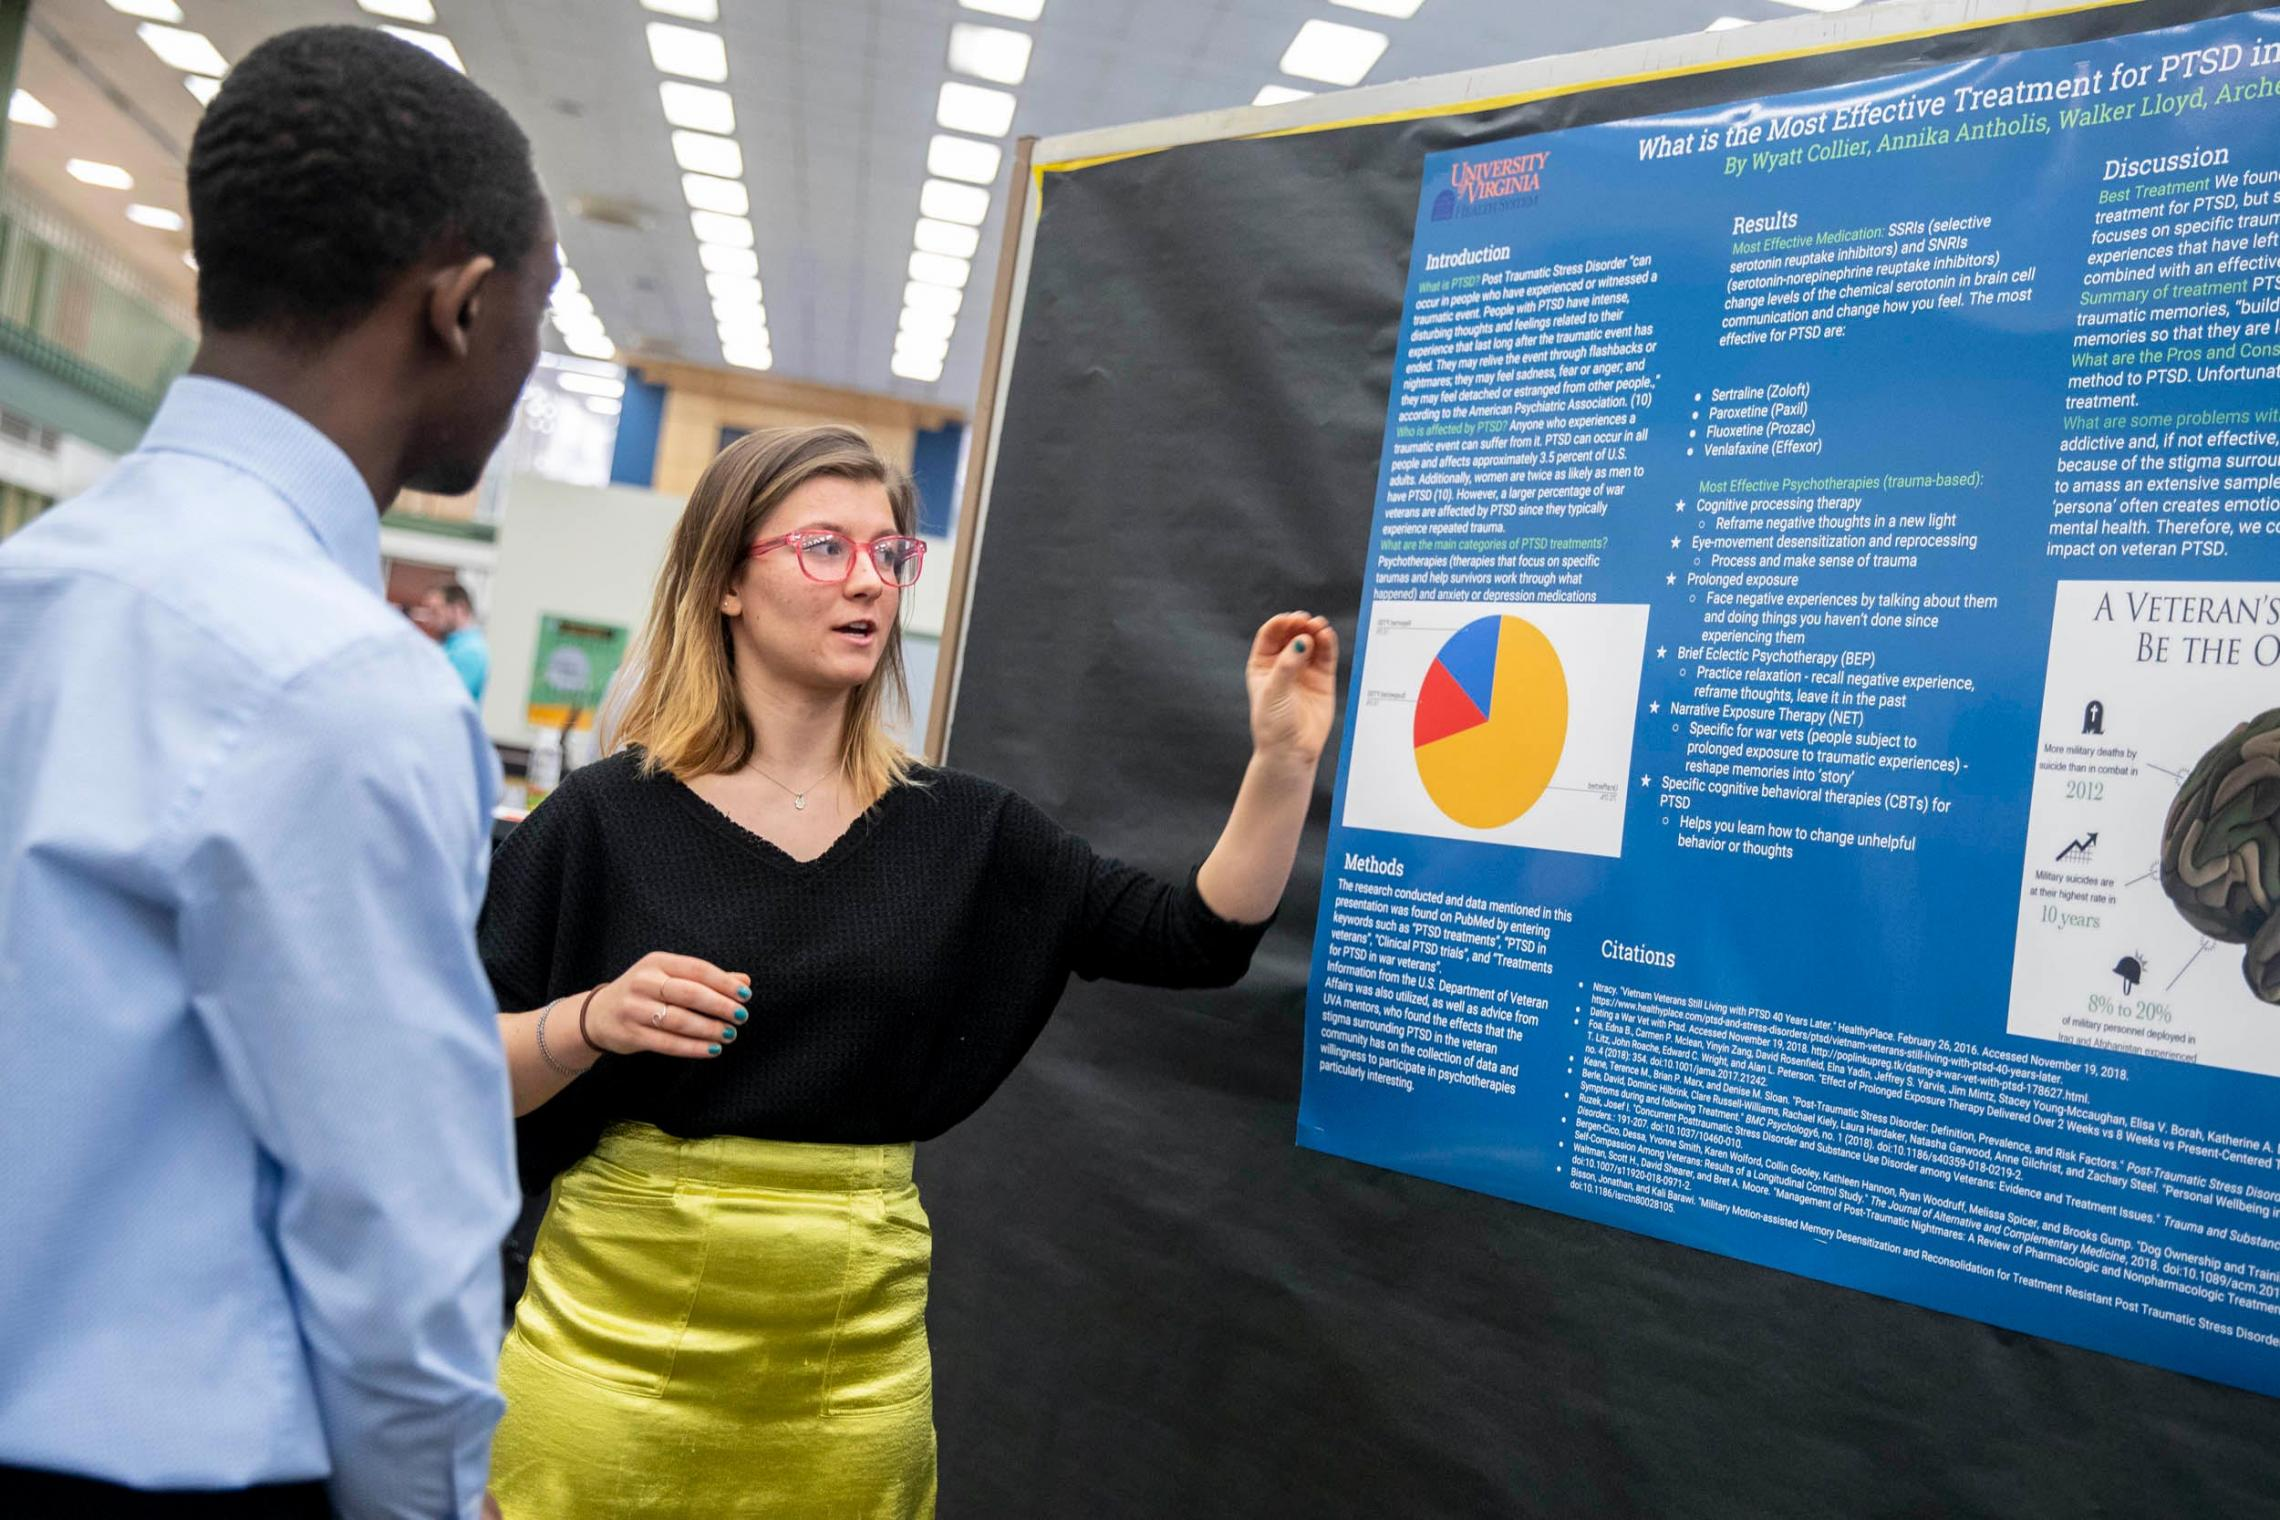 As part of a partnership to engage future leaders in medicine and science, Charlottesville High students visited UVA's Claude Moore Health Sciences Library and were mentored by doctors, librarians and scientists.